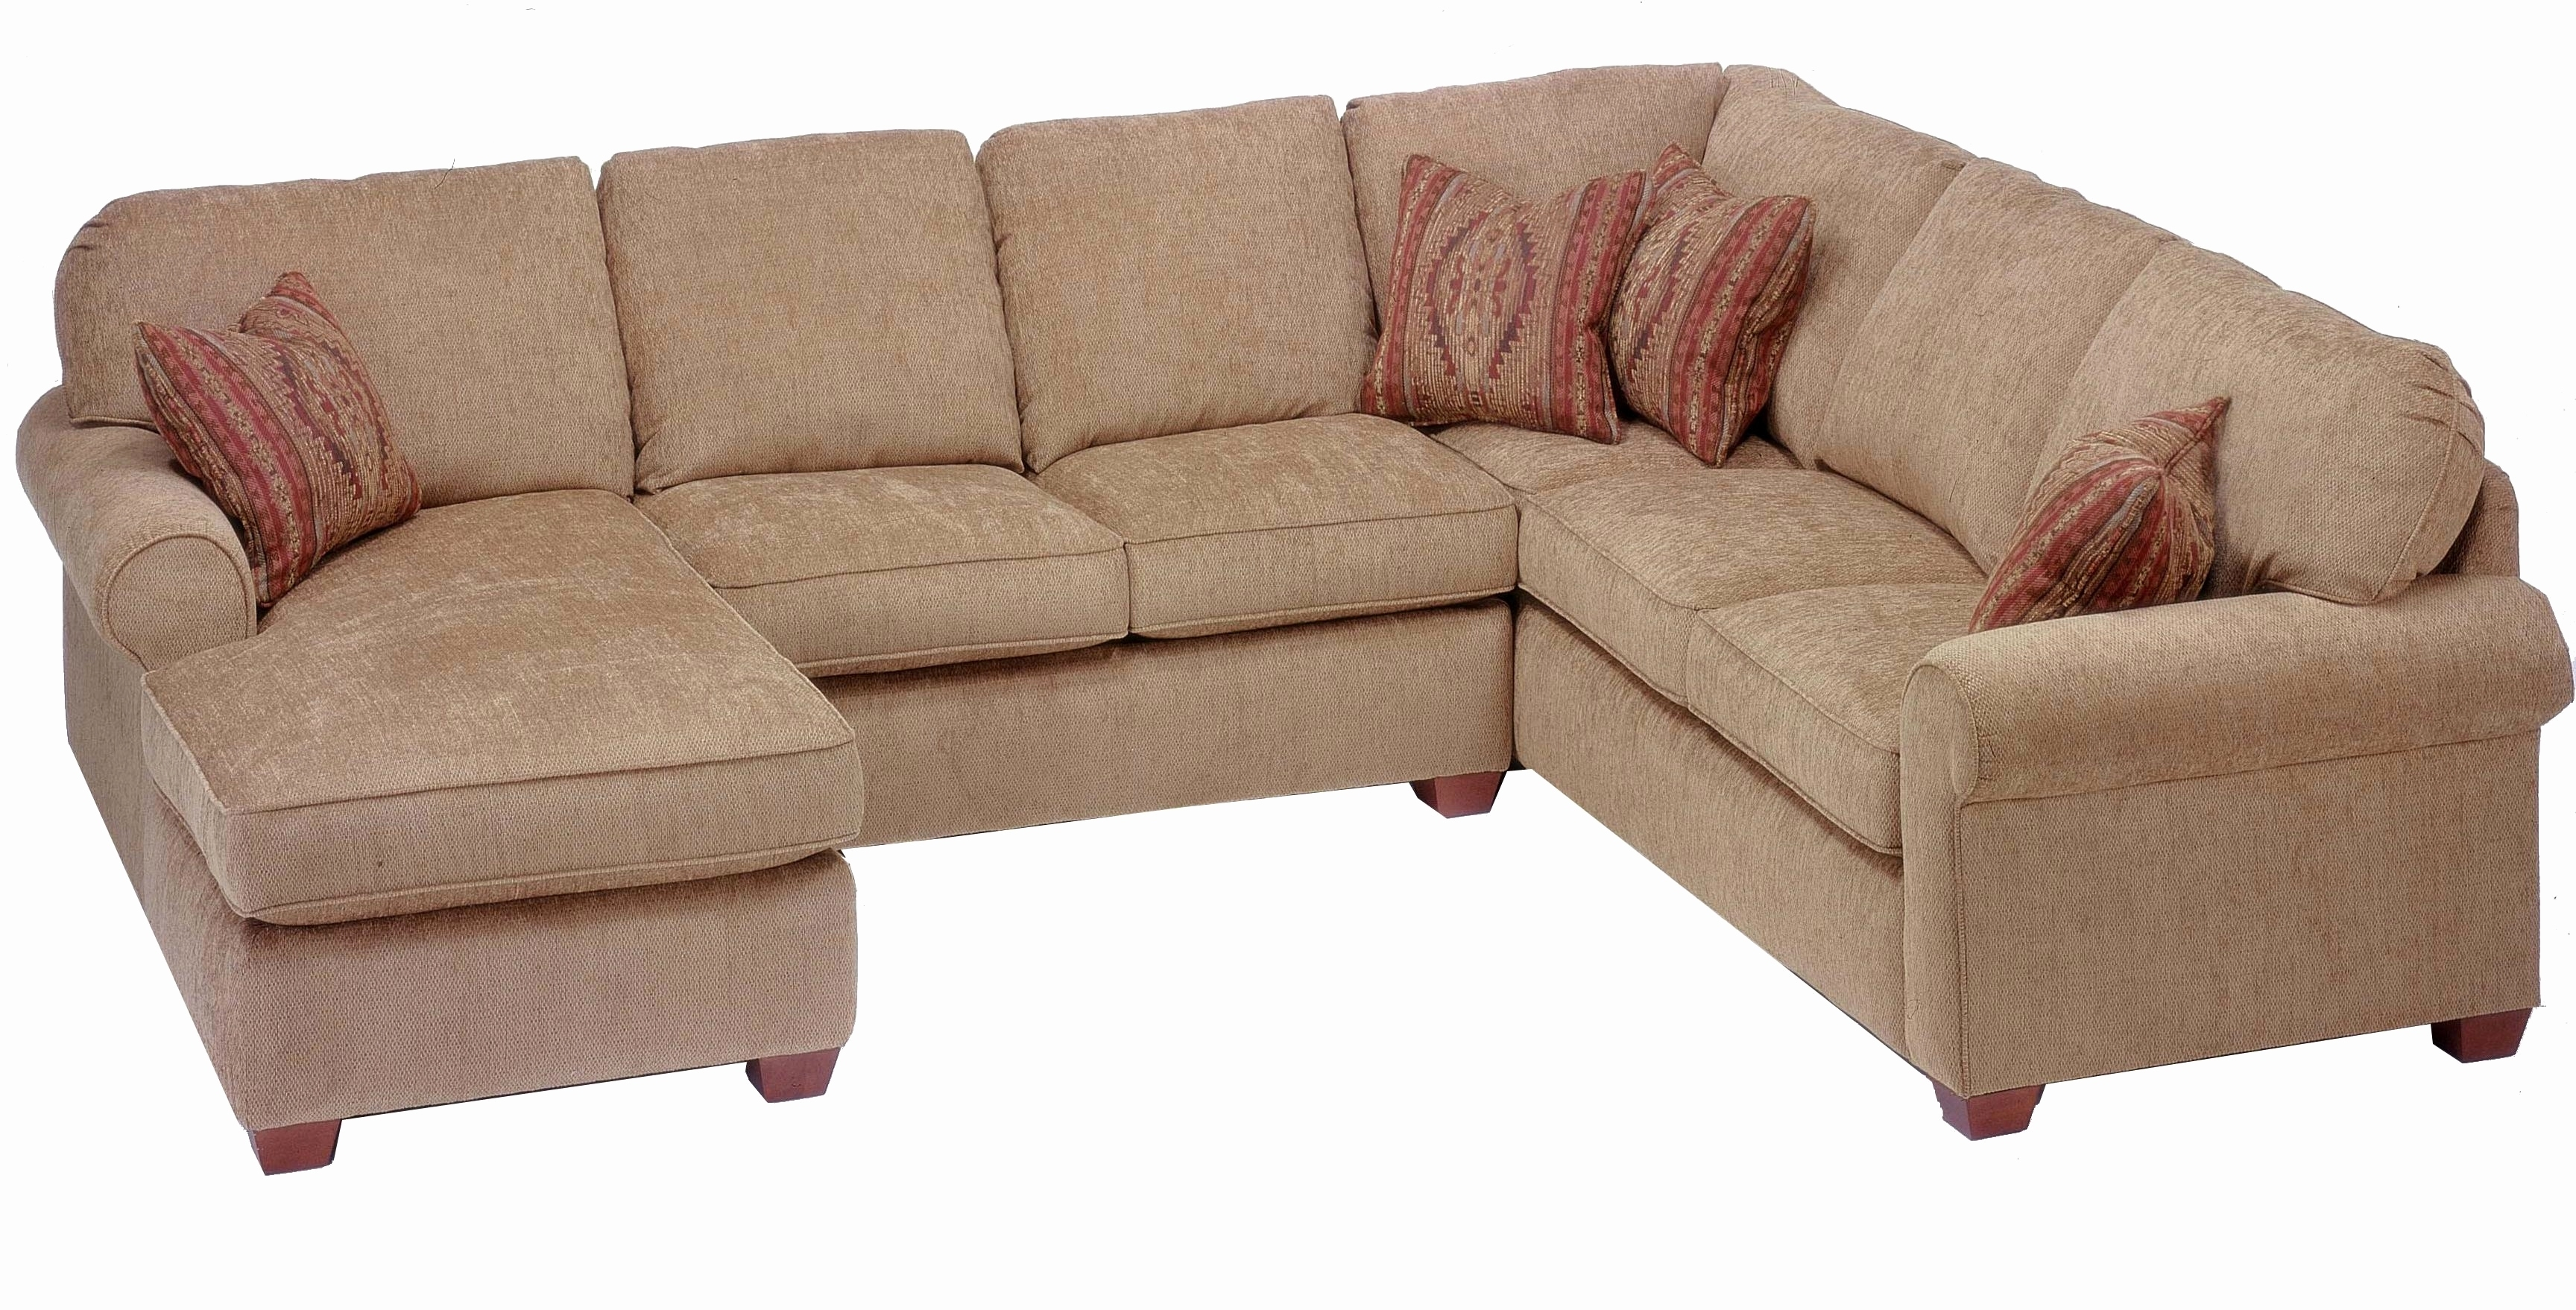 Fresh High Point Sofa 2018 – Couches And Sofas Ideas in Jacksonville Nc Sectional Sofas (Image 4 of 10)